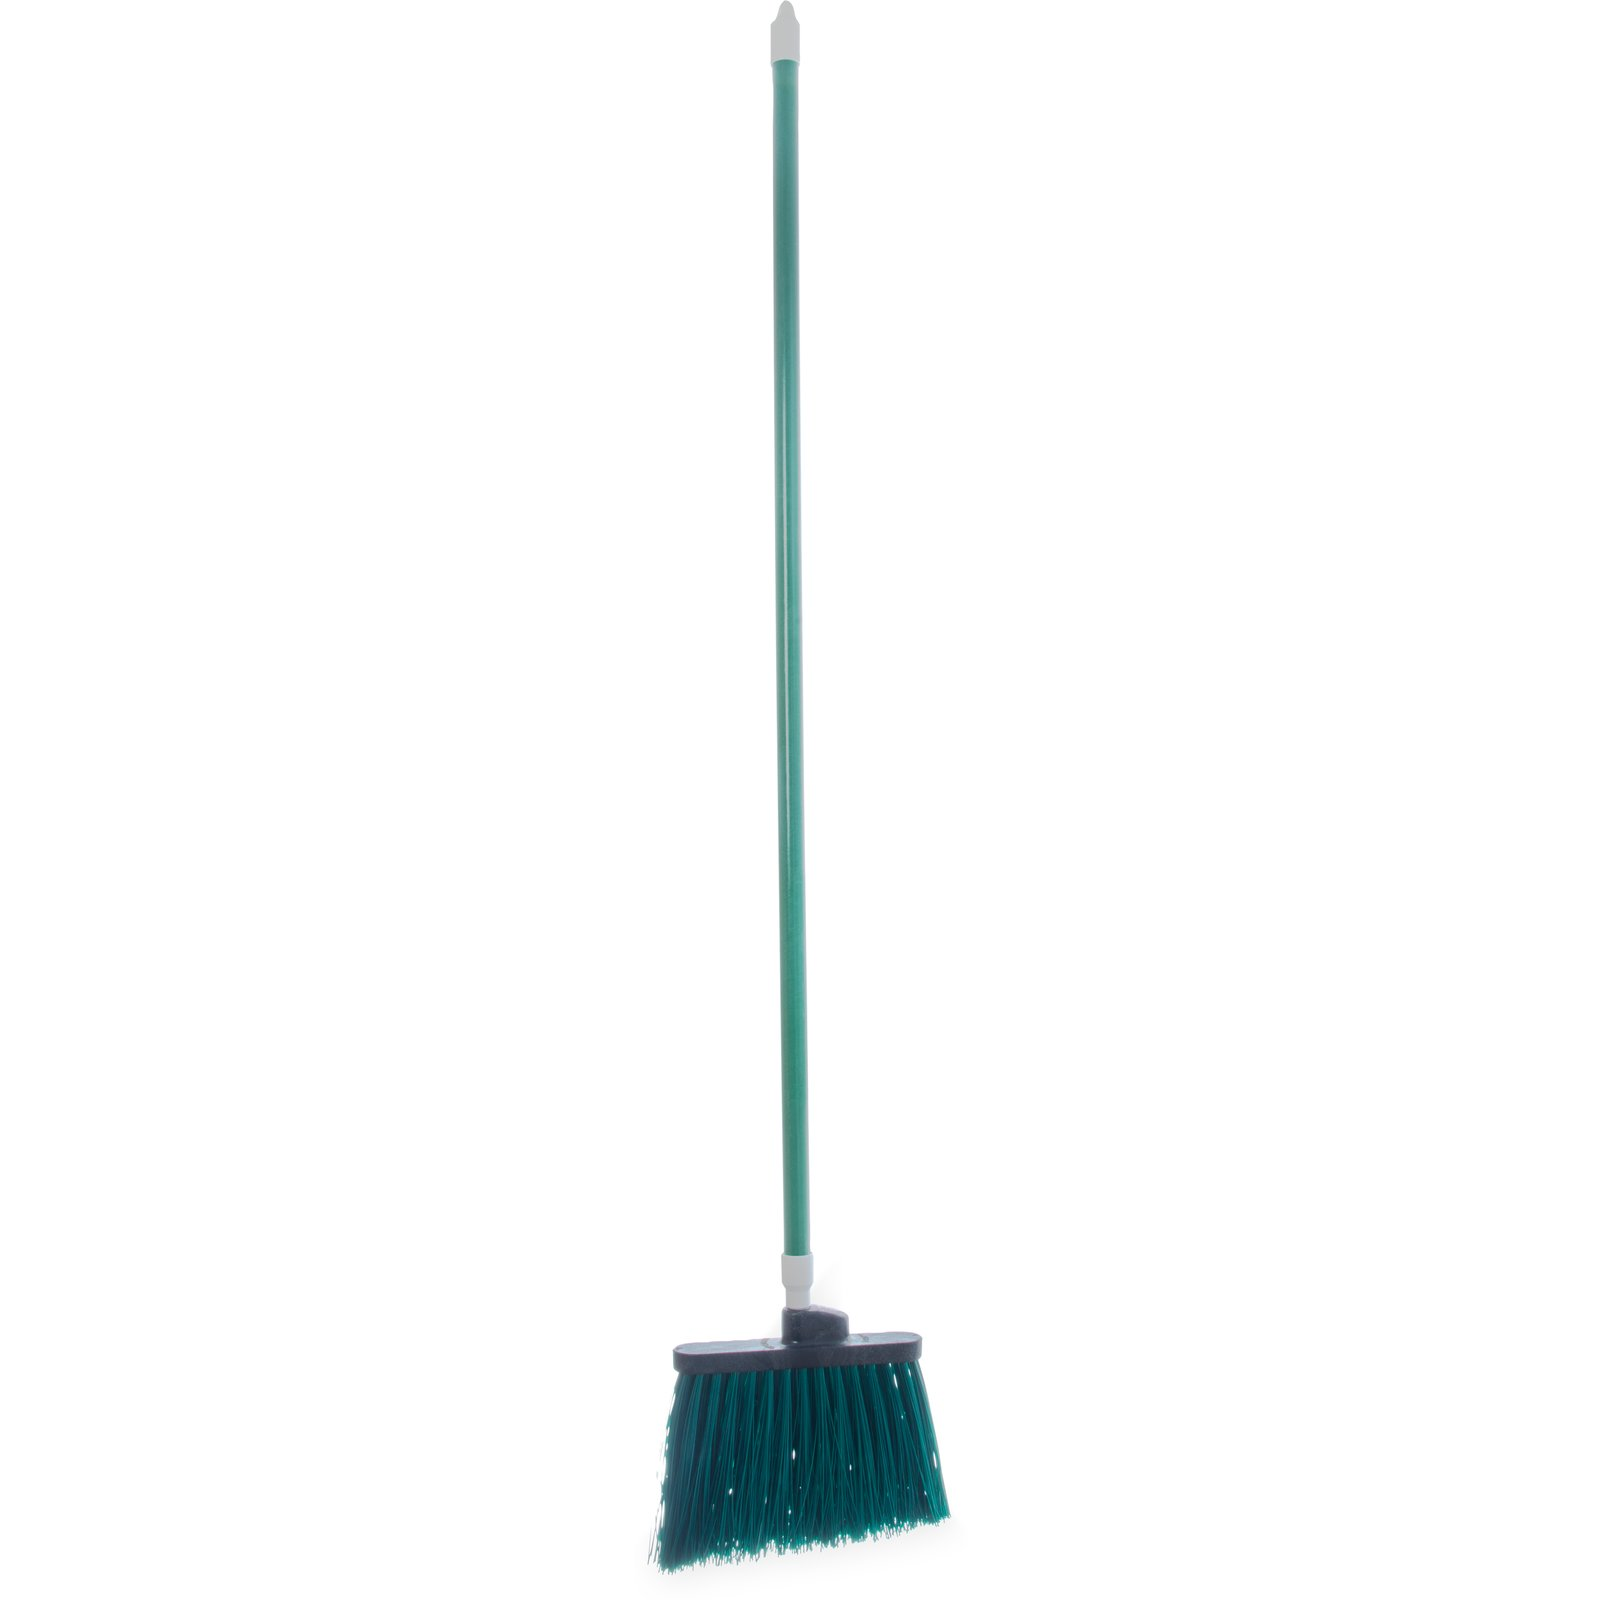 "BROOM 54"" UNFLAGGED ANGLE W/ POLYPROPYLENE BRISTLES GREEN"